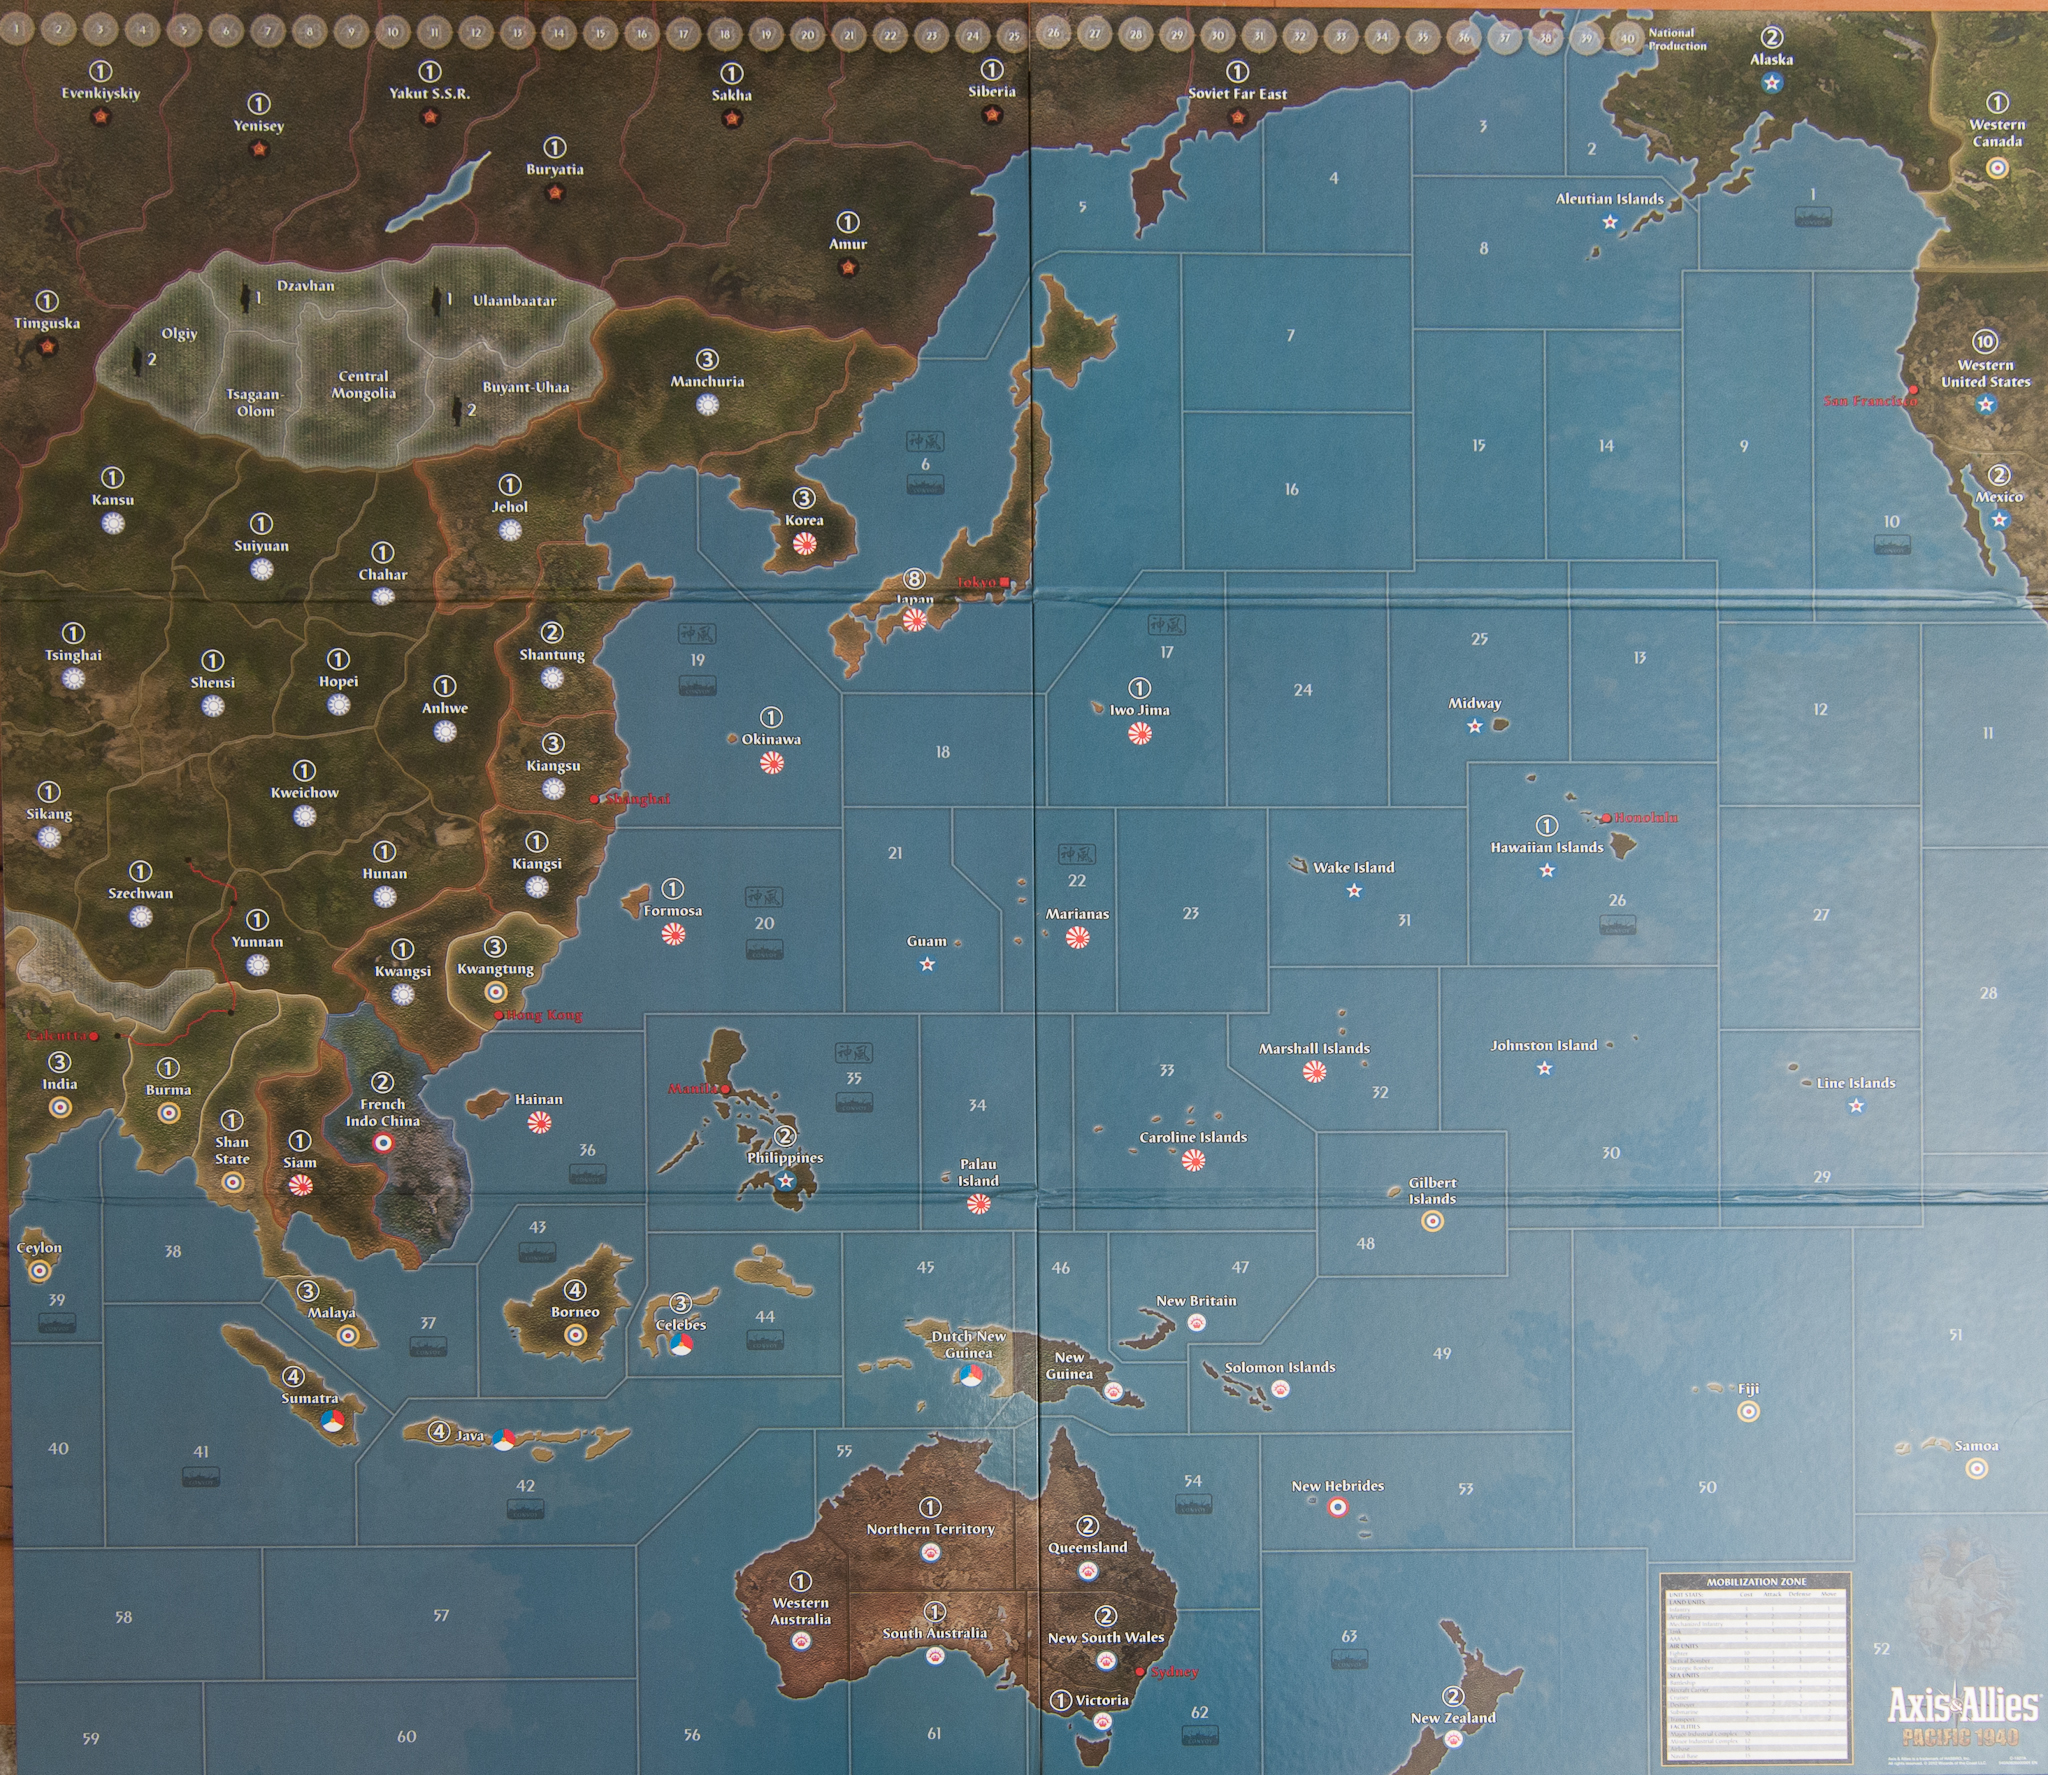 Axis And Allies Pacific Map Map for Axis & Allies Pacific 1940 Second Edition | Axis & Allies .org